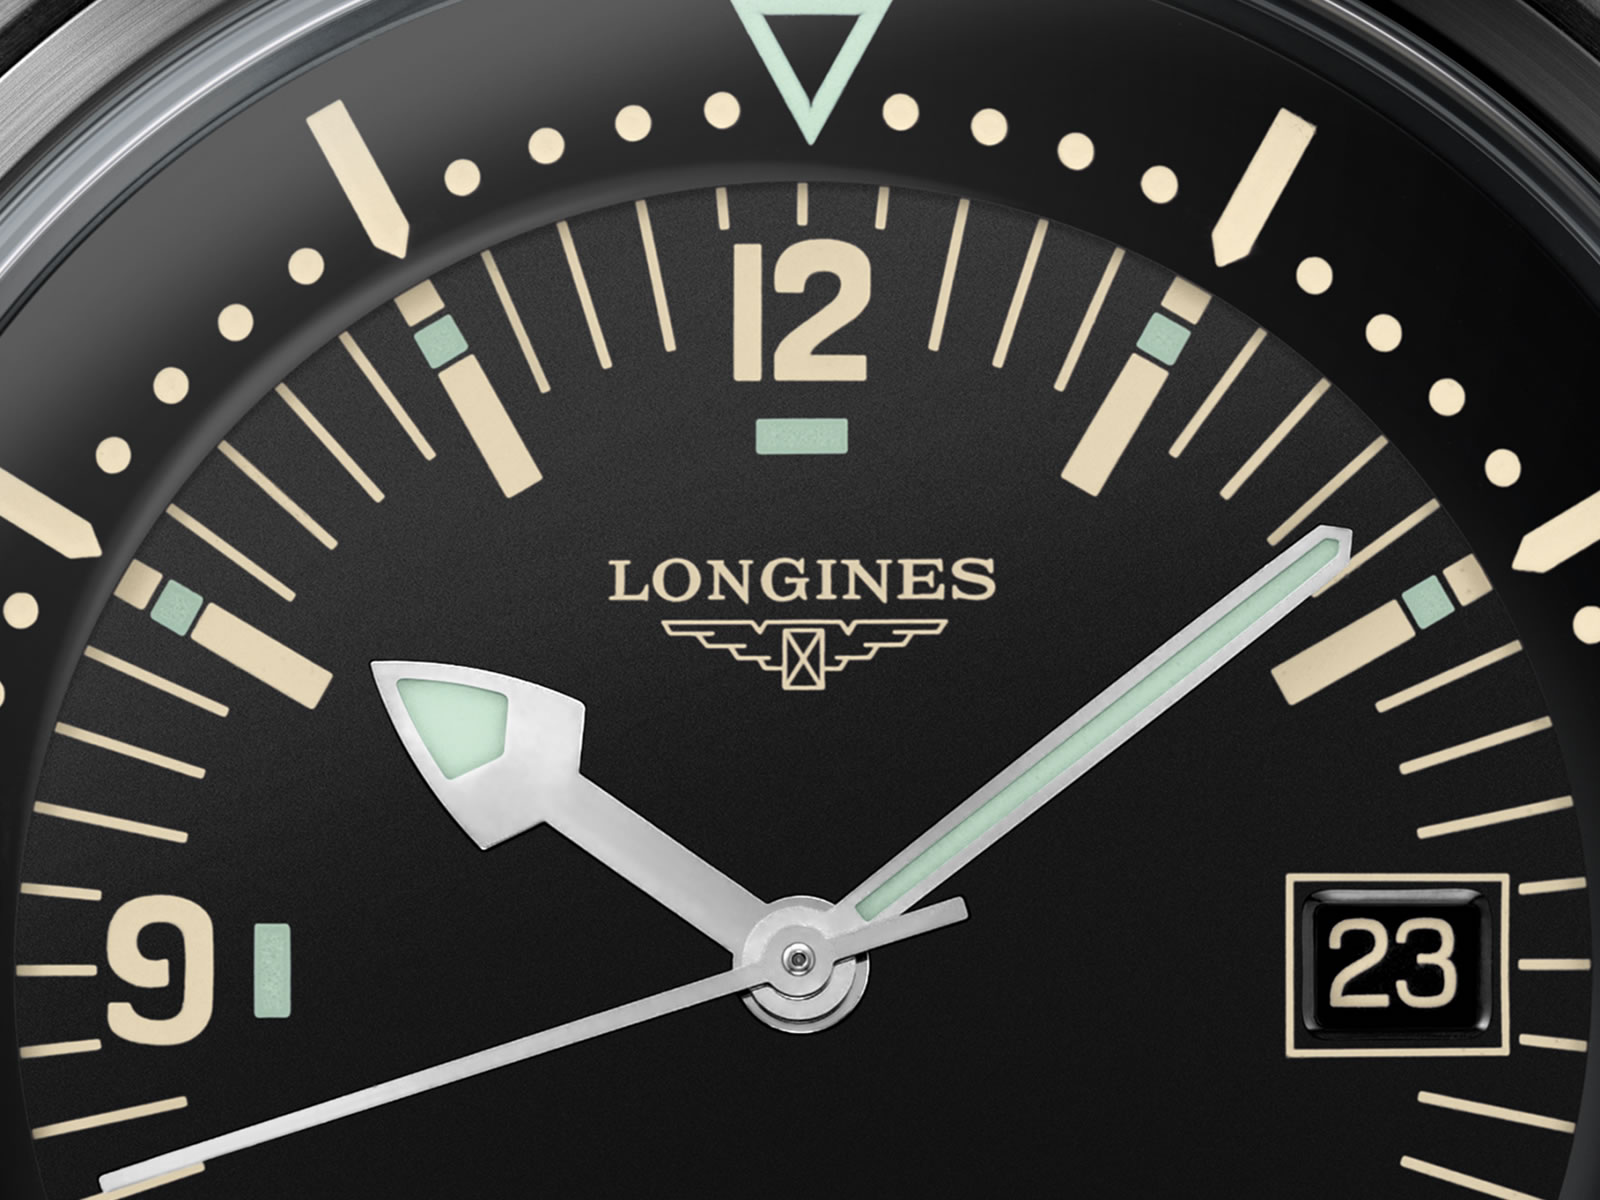 l3-774-2-50-9-the-longines-legend-diver-watch-5-.jpg